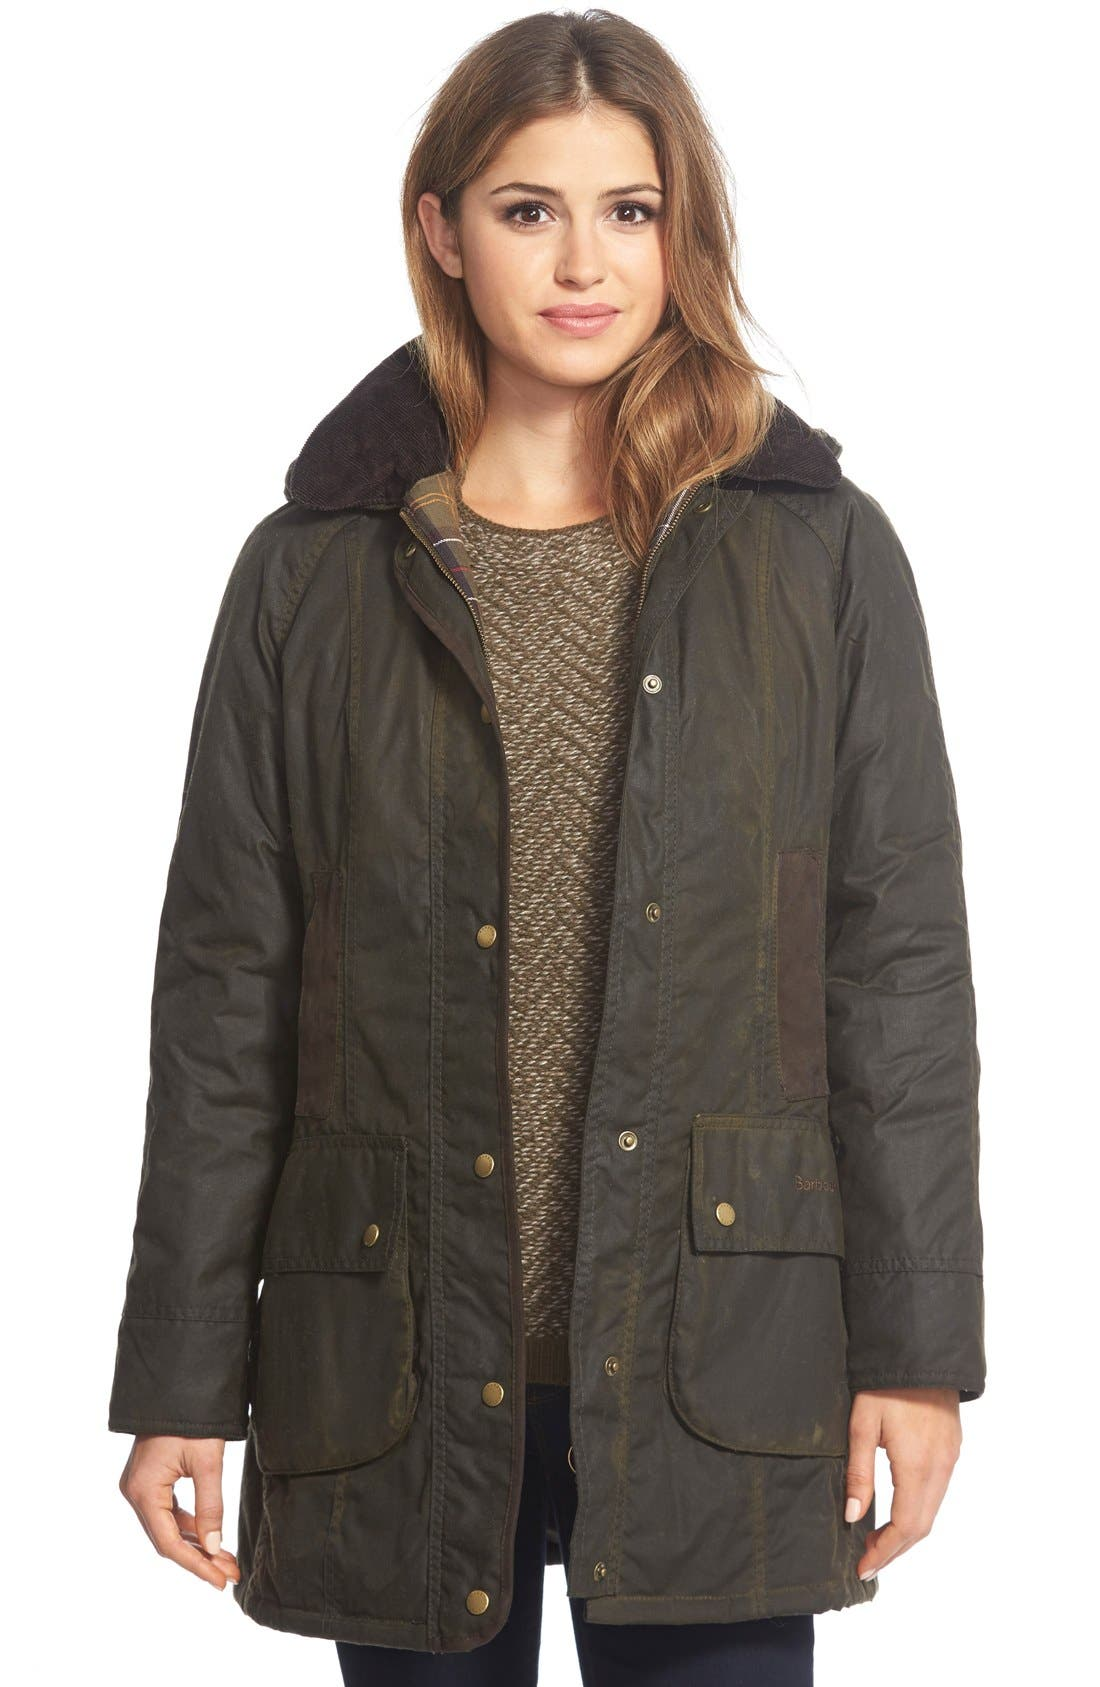 Main Image - Barbour 'Bower' Waxed CottonJacket